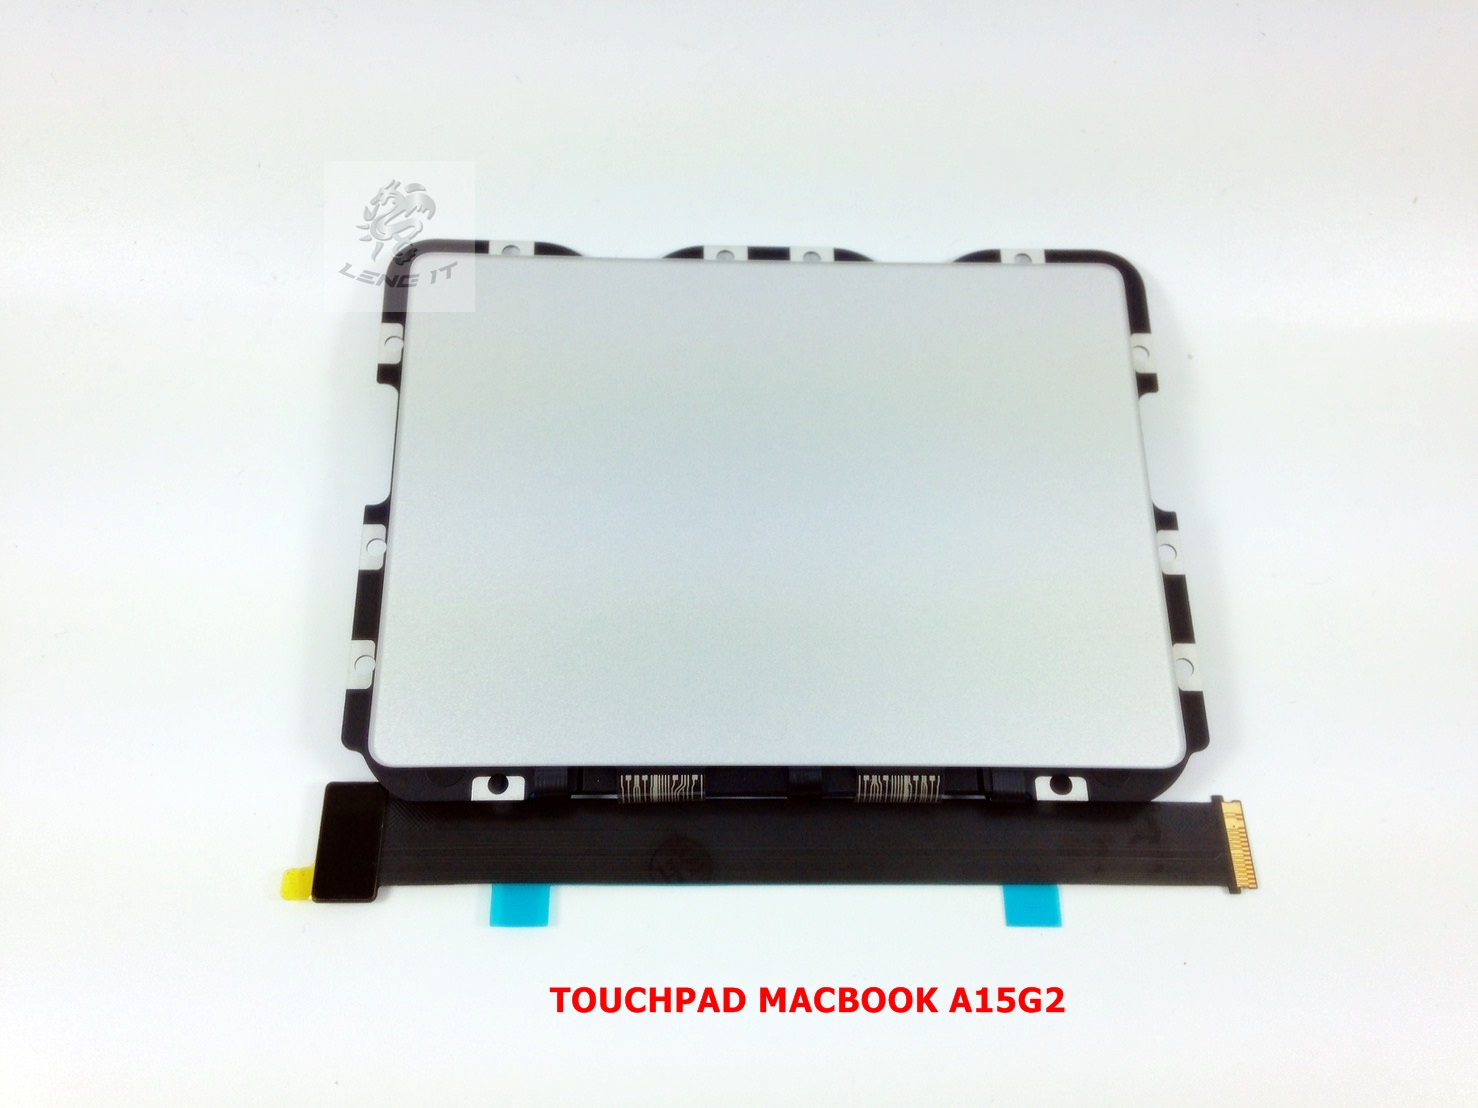 TOUCHPAD MACBOOK A15G2